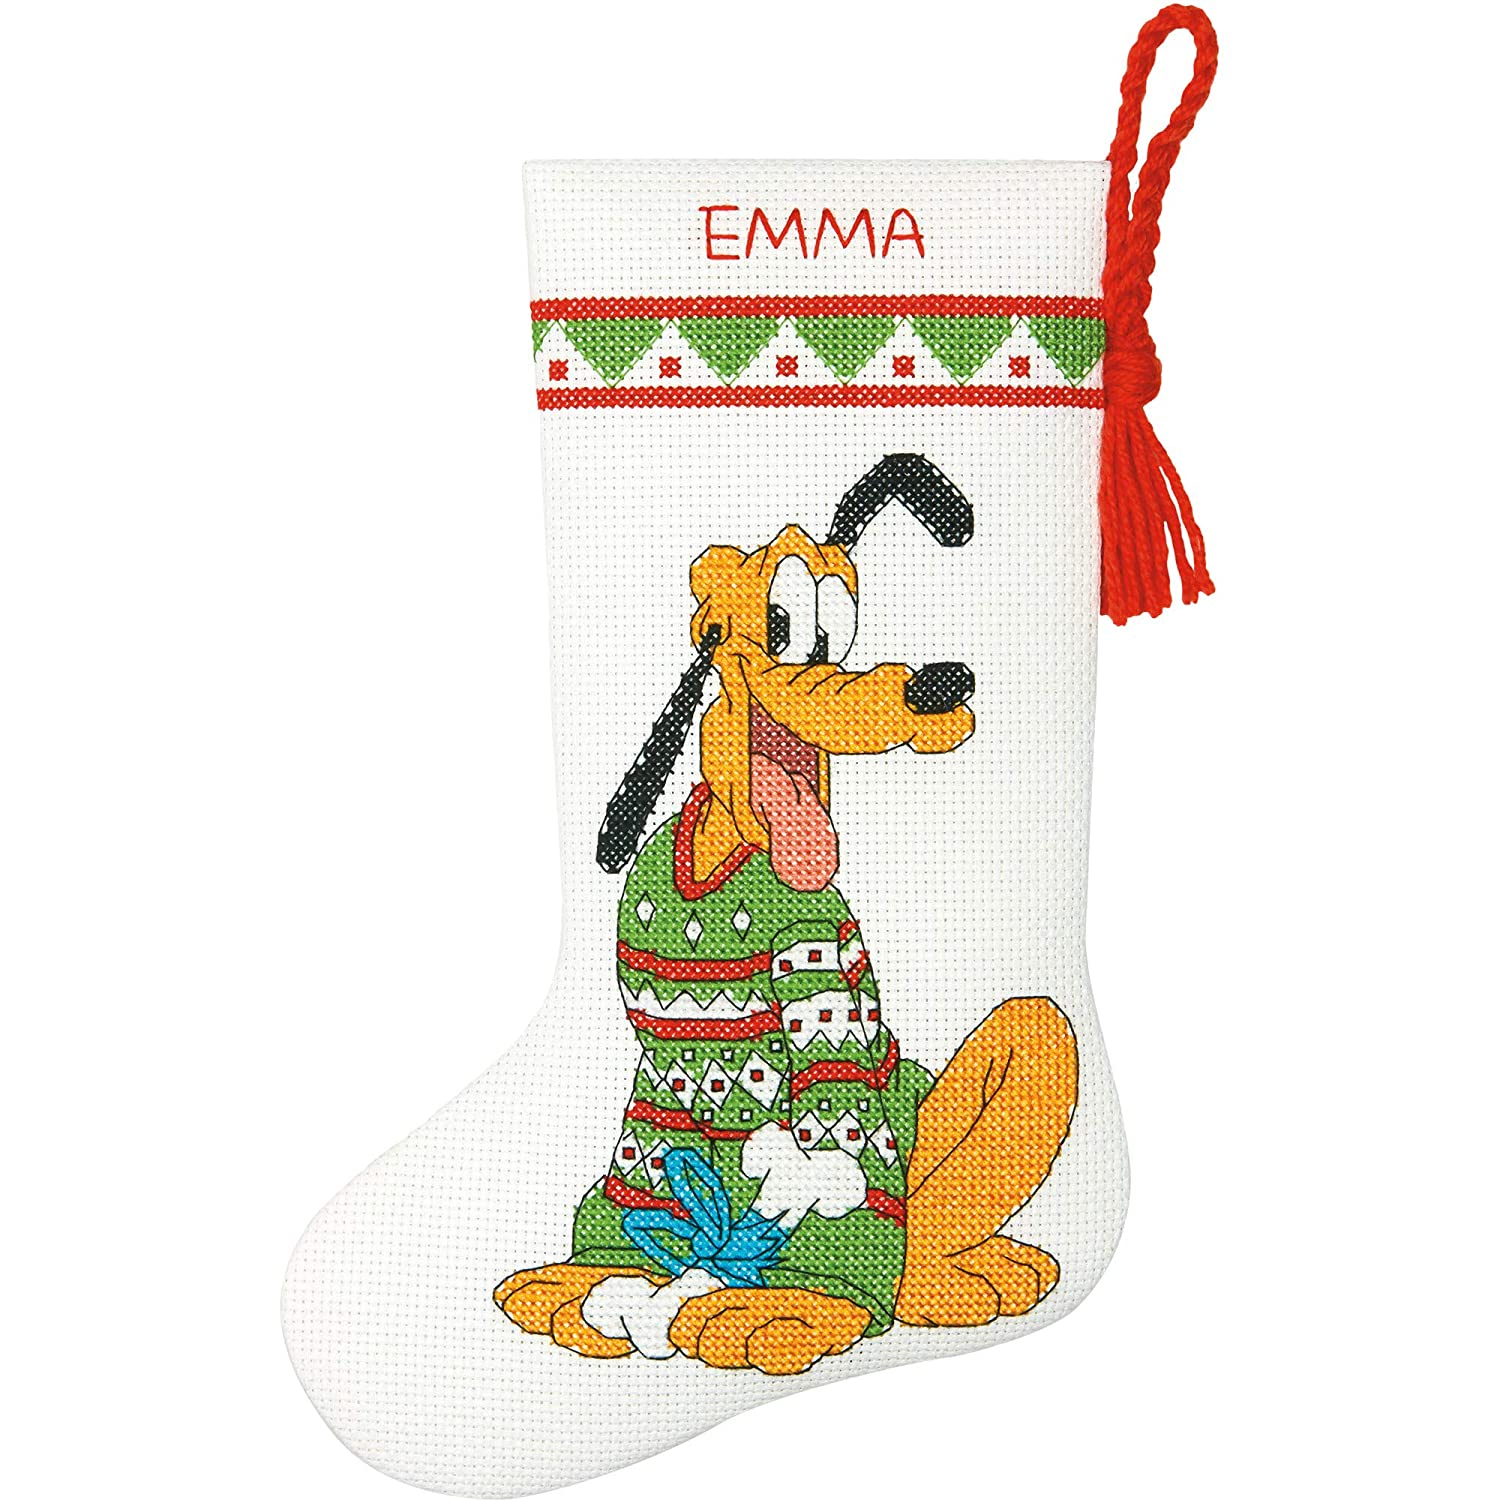 Dimensions Pluto Christmas Stocking Counted Cross Stitch Kit for Beginners 14 Count White Aida Cloth 10L